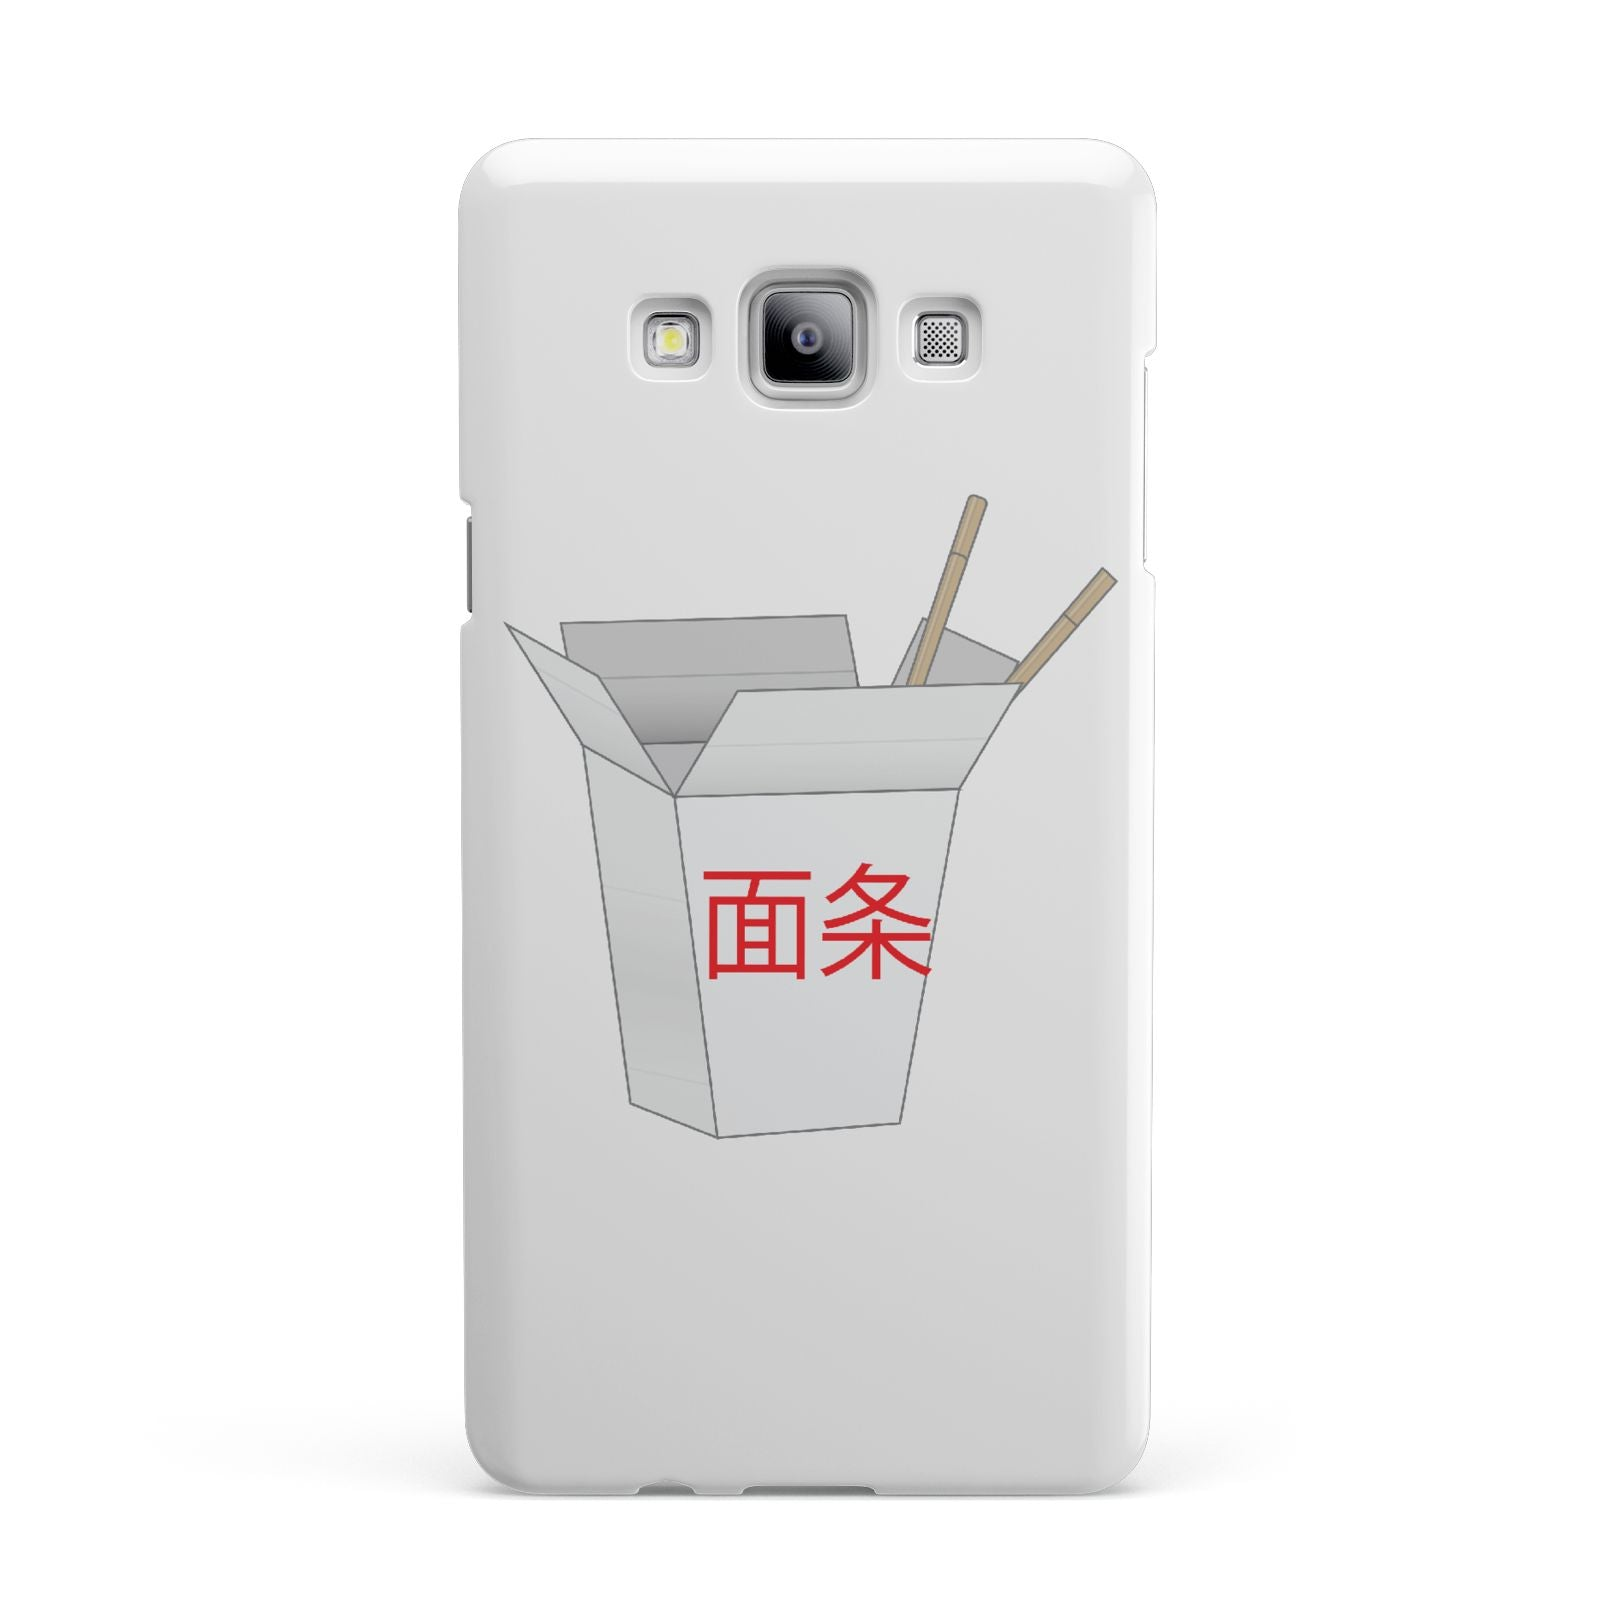 Chinese Takeaway Box Samsung Galaxy A7 2015 Case